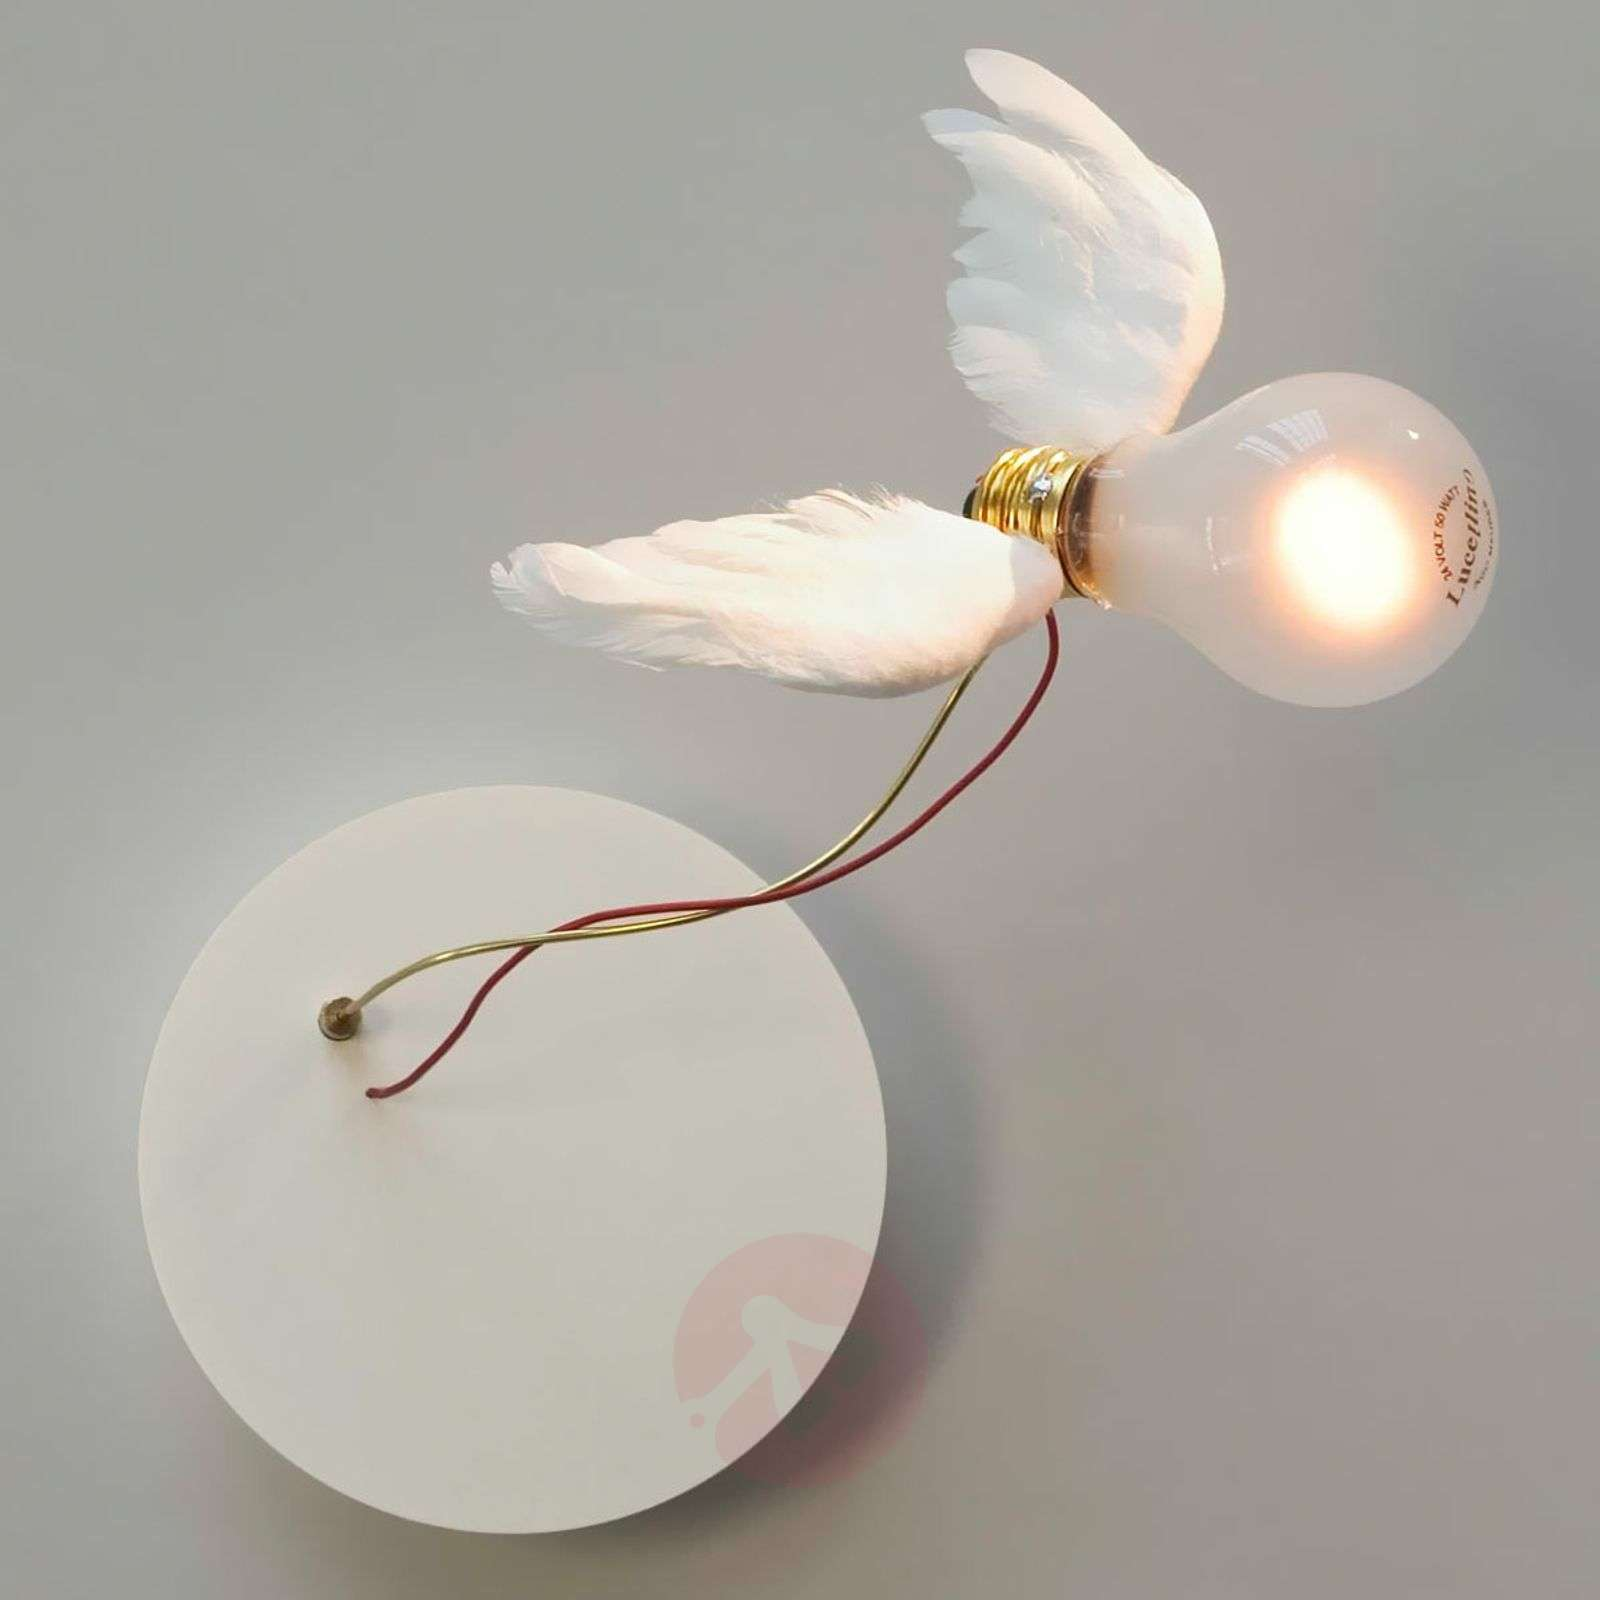 Wall light Lucellino NT with goose feather wings-5026028-02